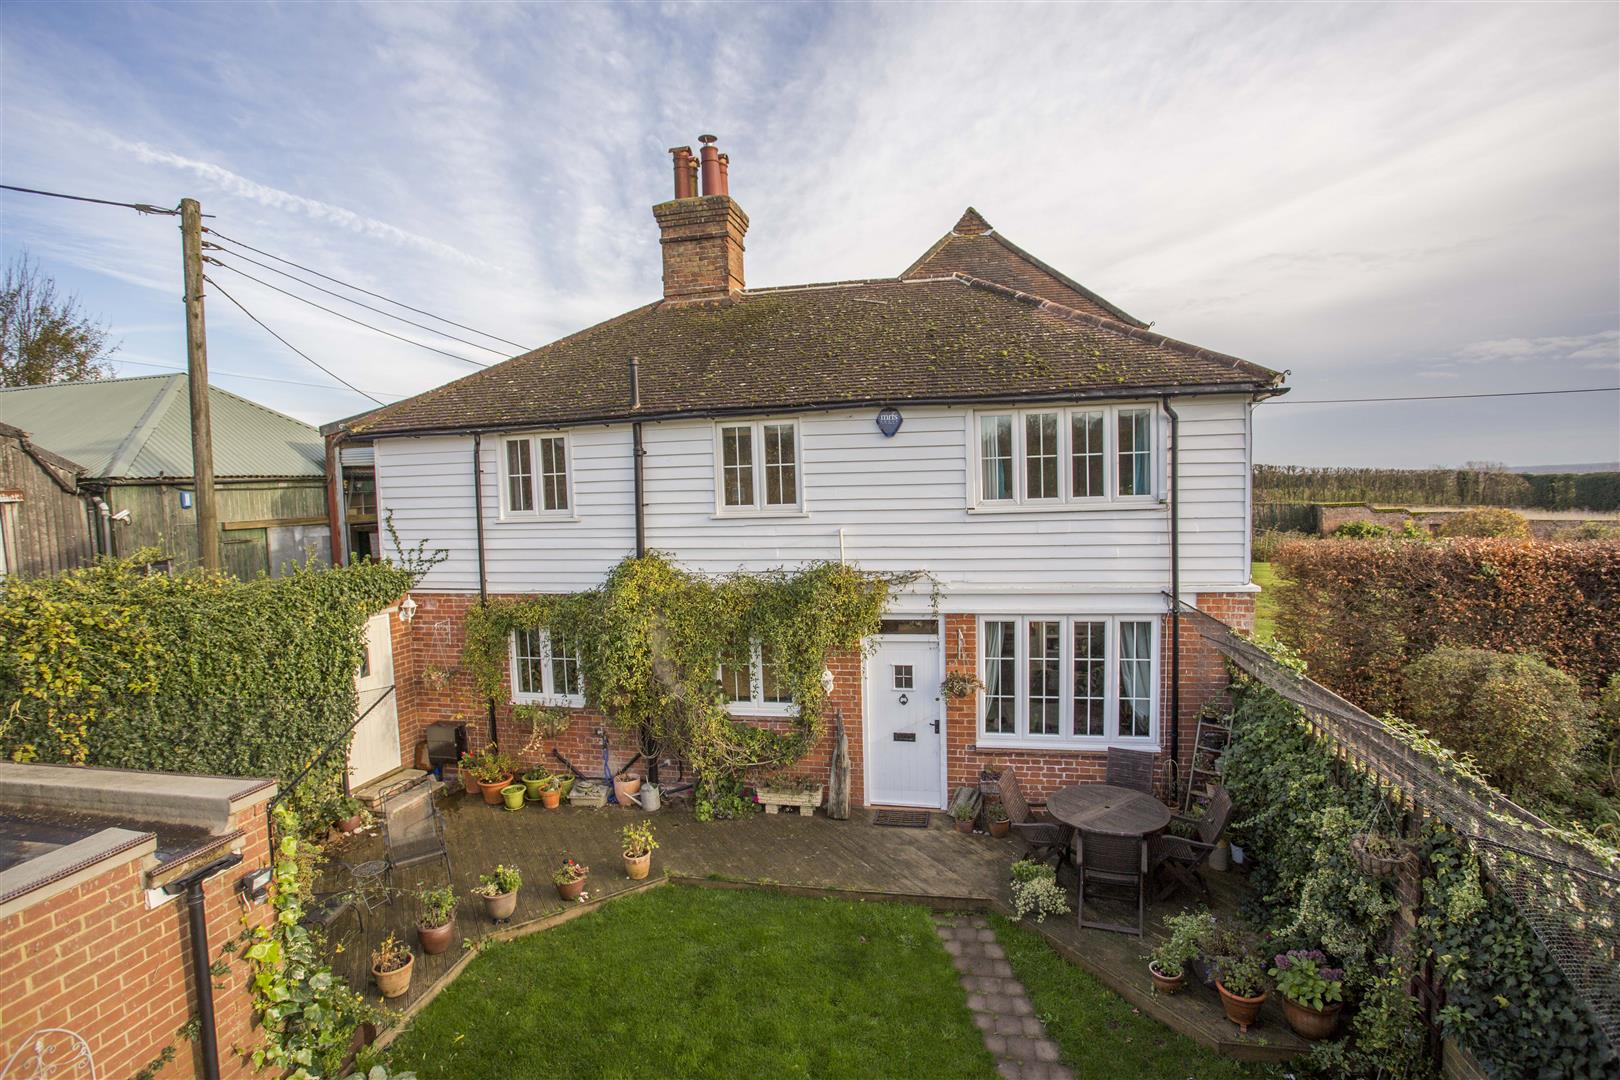 3 Bedrooms House for sale in Chart Hill Road, Chart Sutton, Maidstone